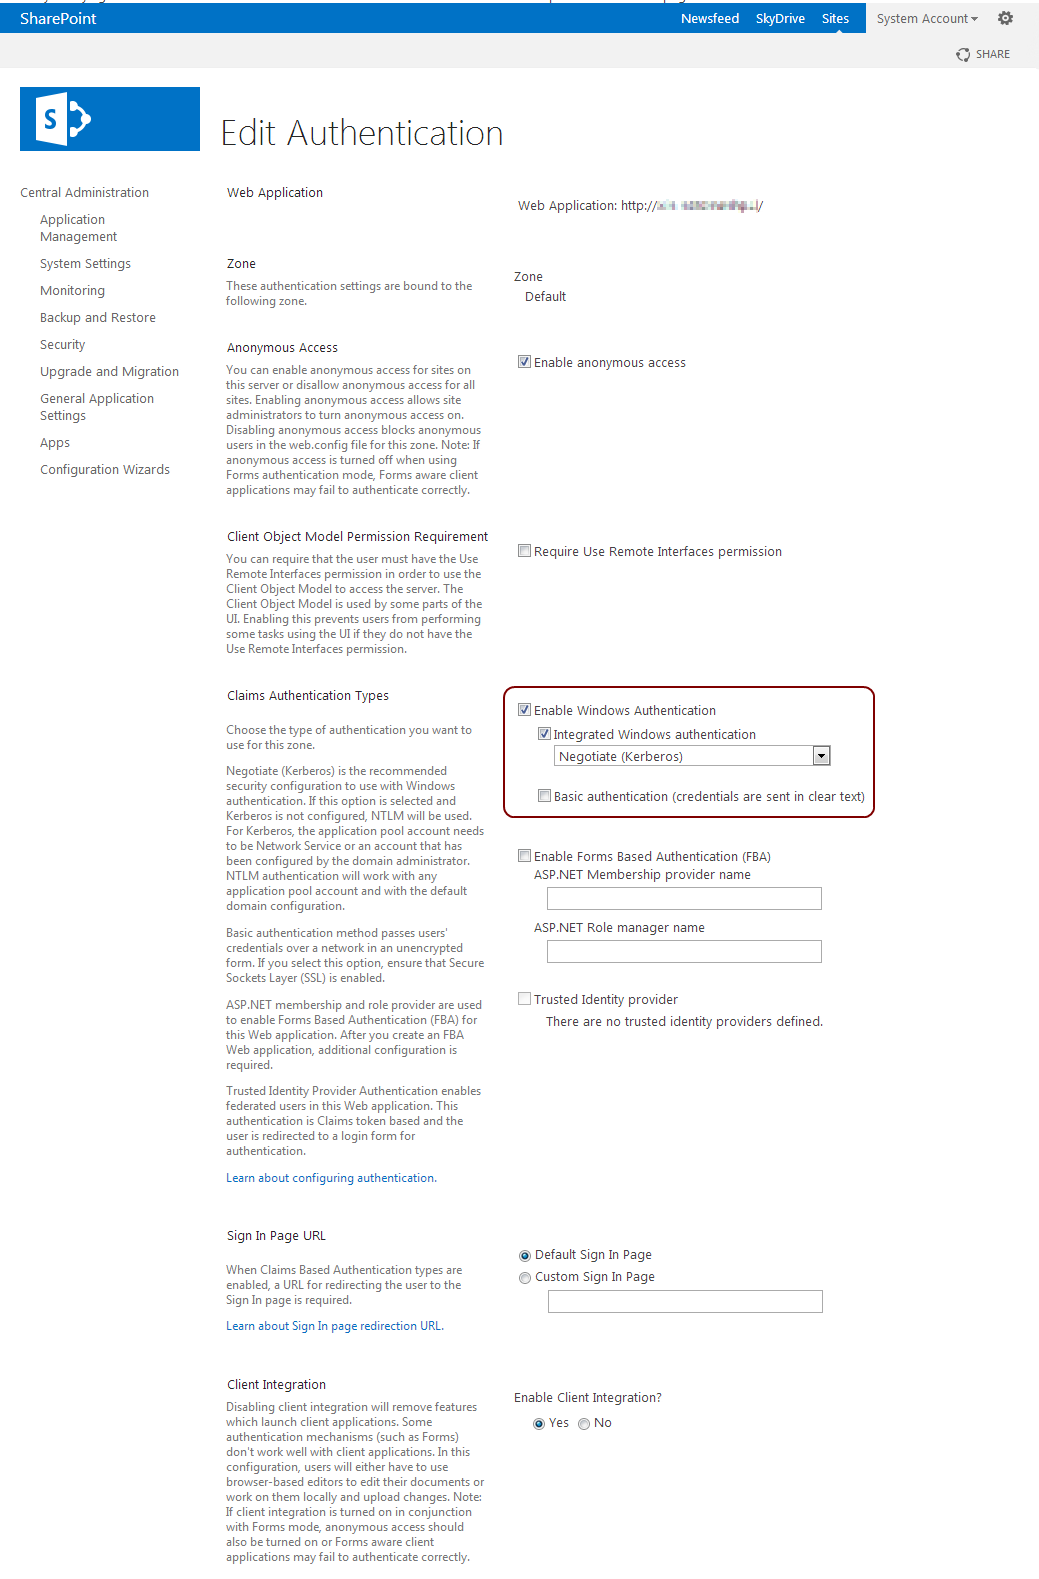 Configure SharePoint authentication providers